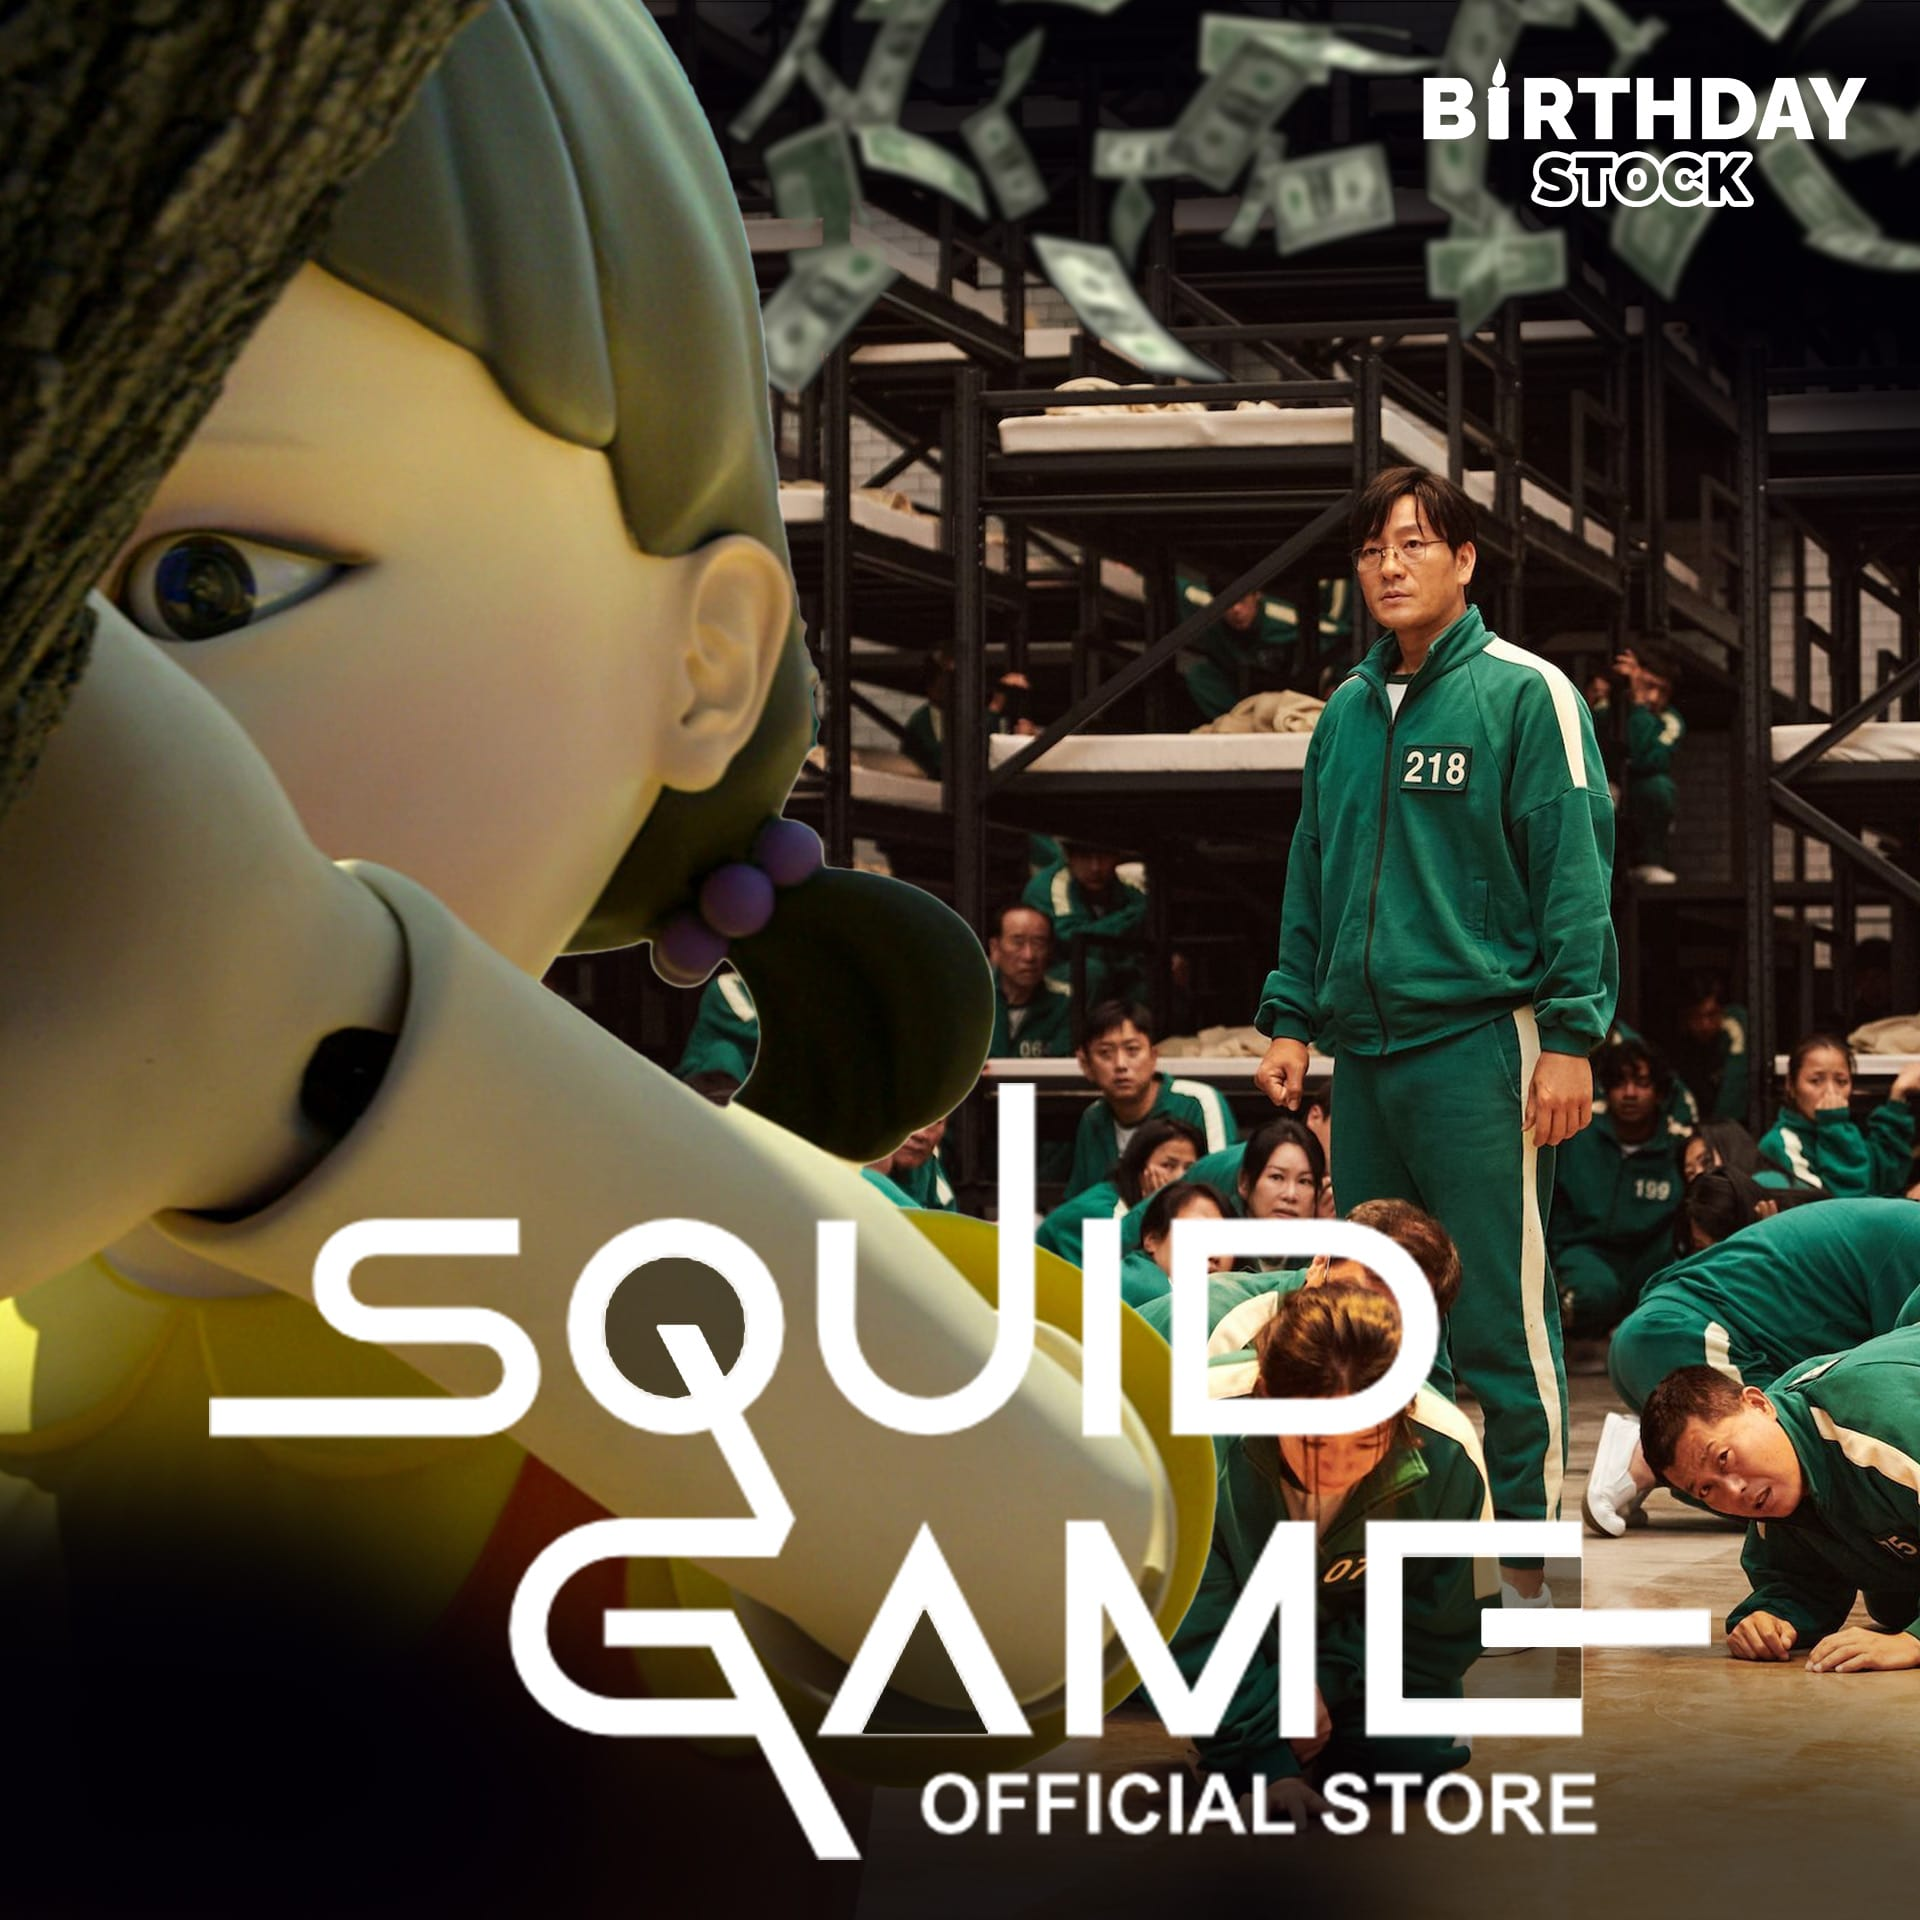 squid game costumes for family, kids, dogs